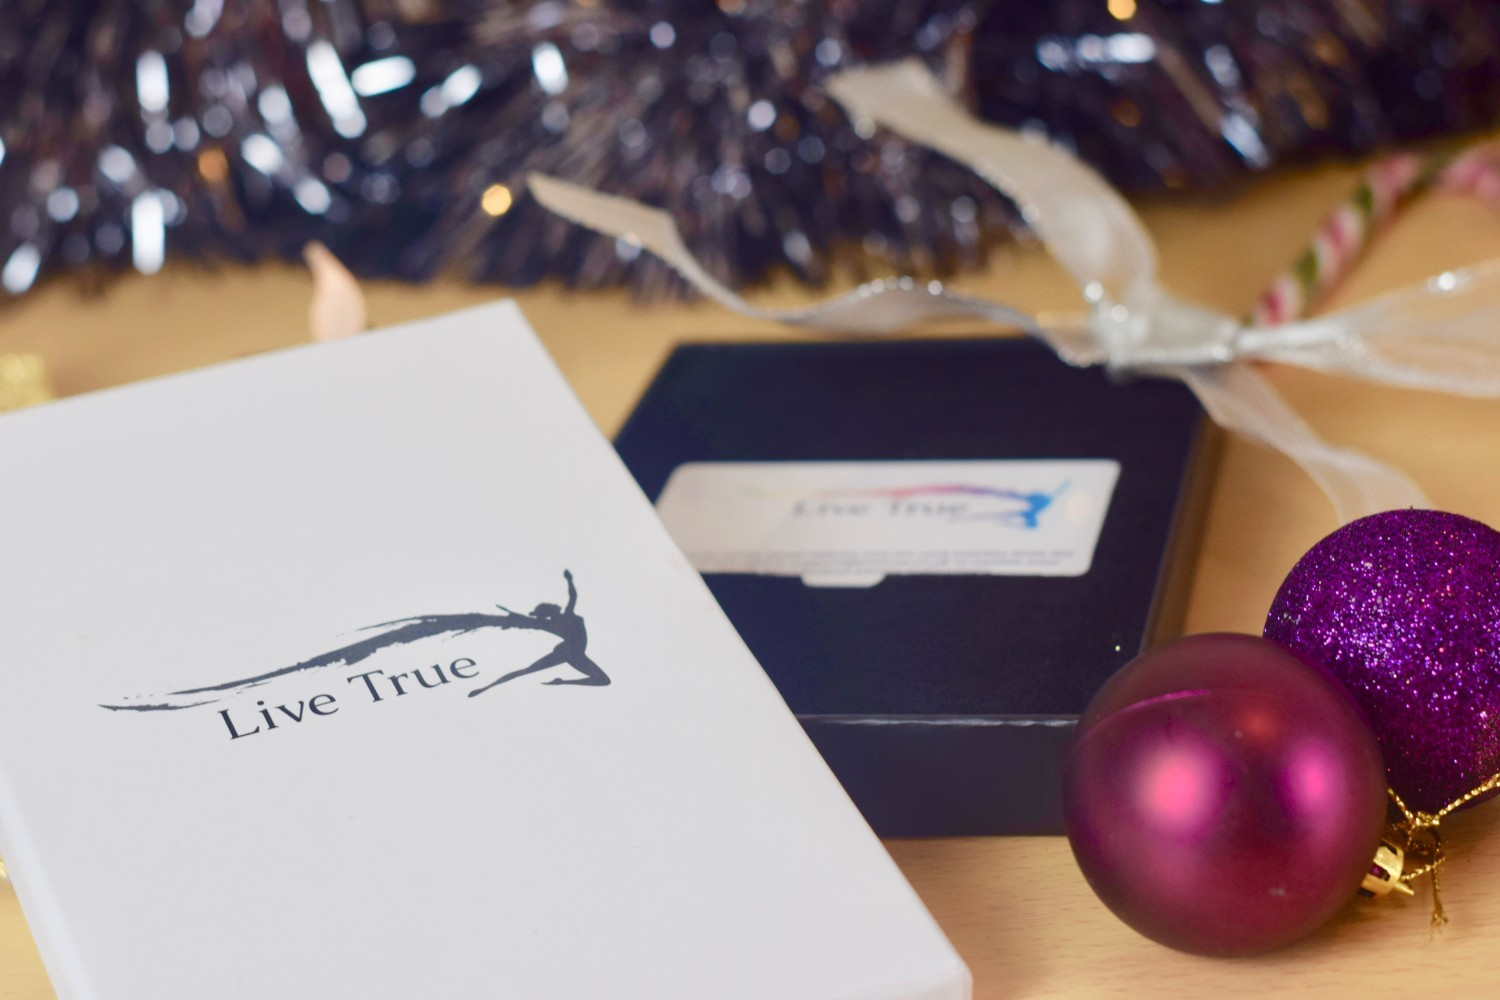 Live True careers guidance Christmas gift idea